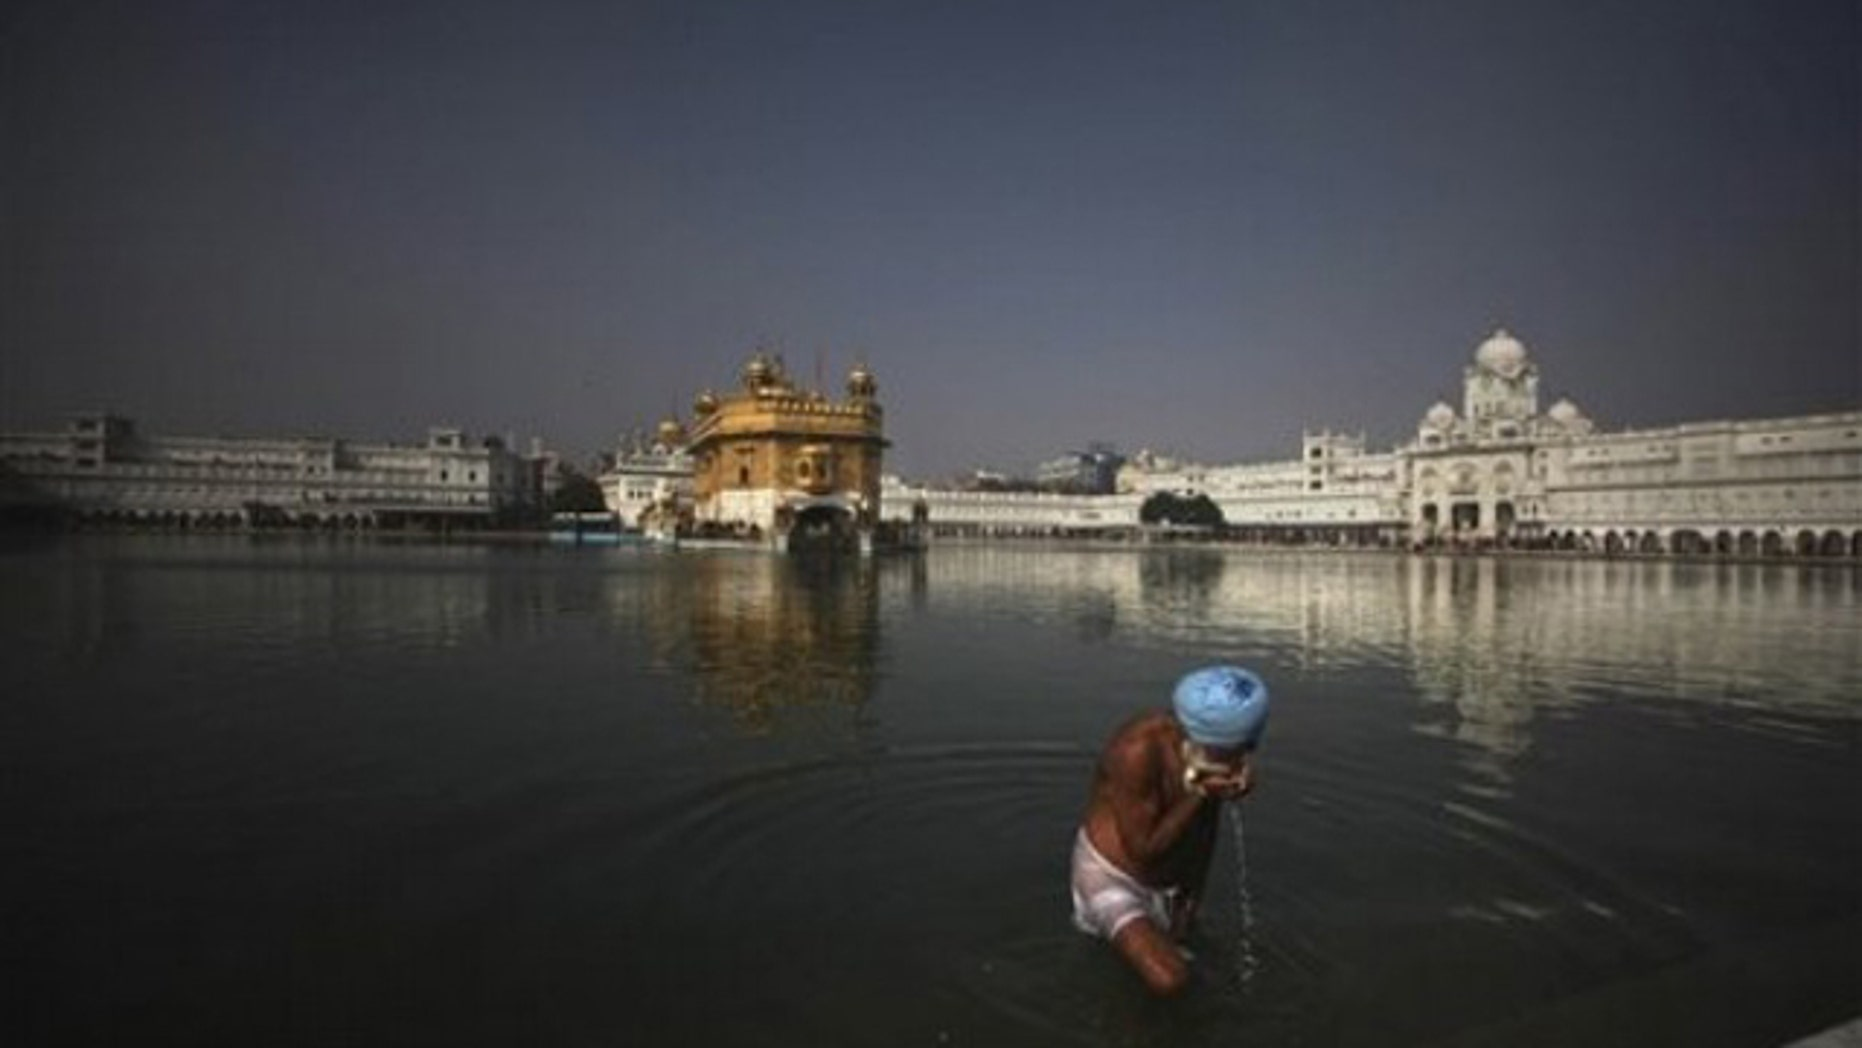 A Sikh devotee drinks water from the holy pond at the Golden Temple in Amritsar, India, on Jan. 4. (AP Photo)